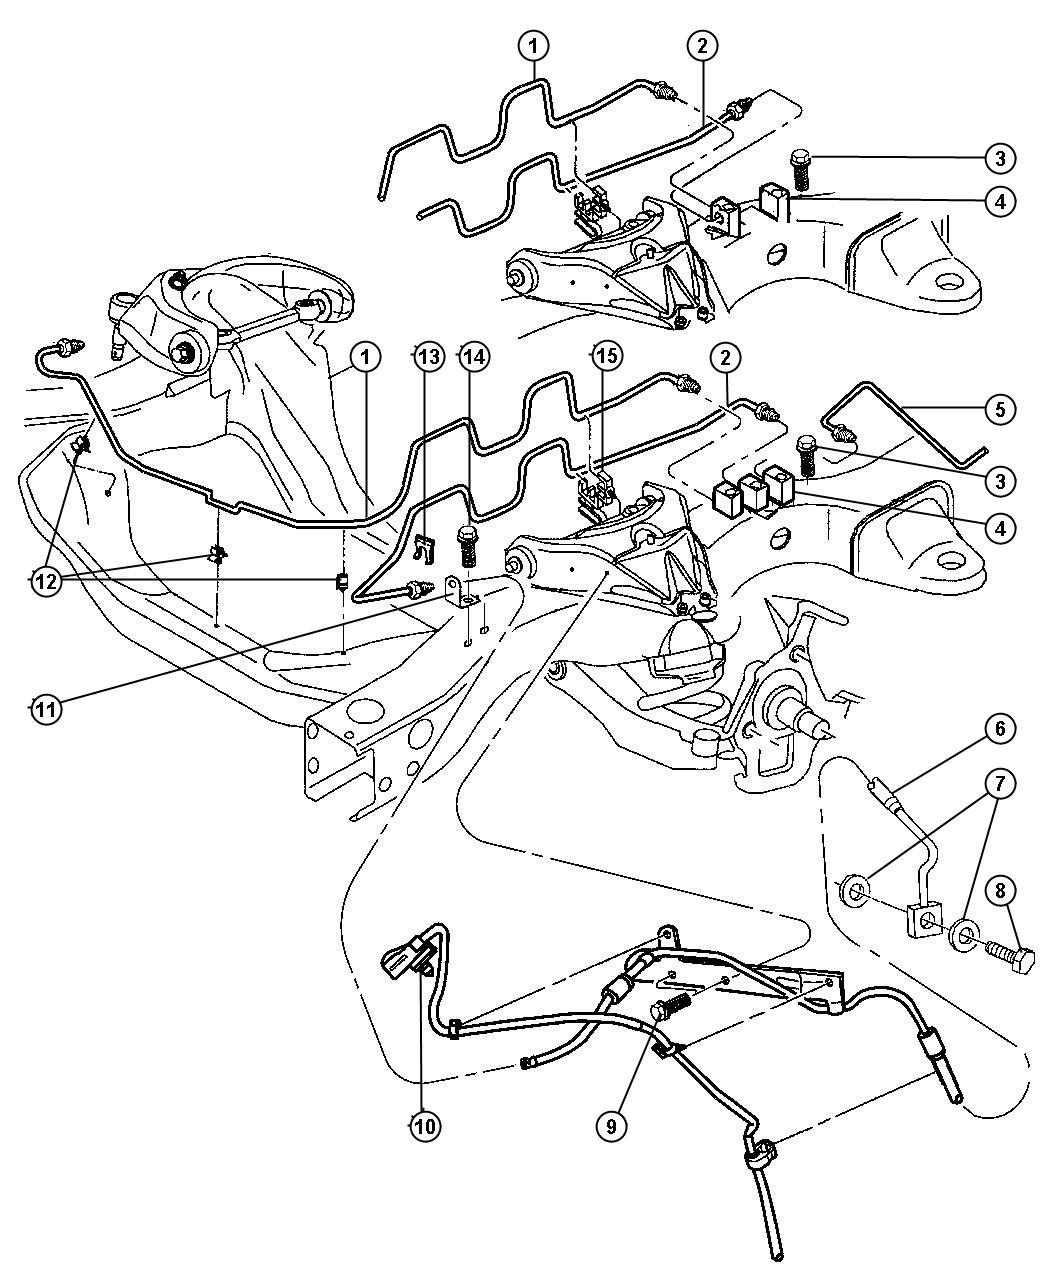 Dodge Dakota Brake System Diagram : Dodge durango abs wiring harness diagram